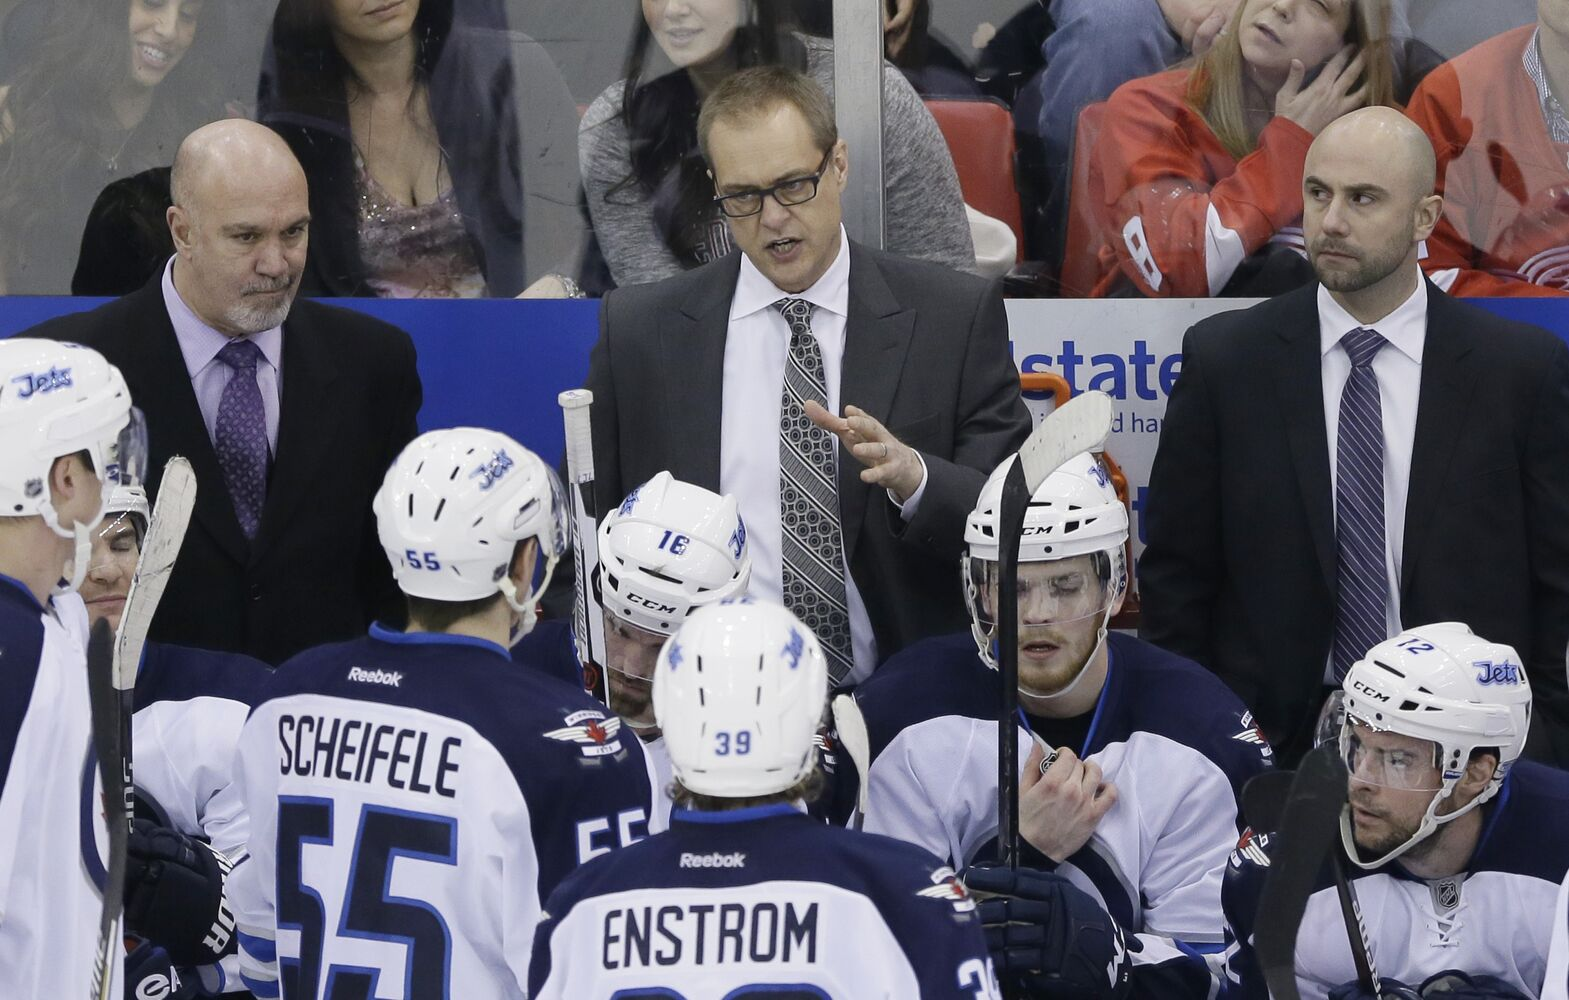 Jets coach Paul Maurice plots strategy with his team during a timeout. (Carlos Osorio / The Associated Press)